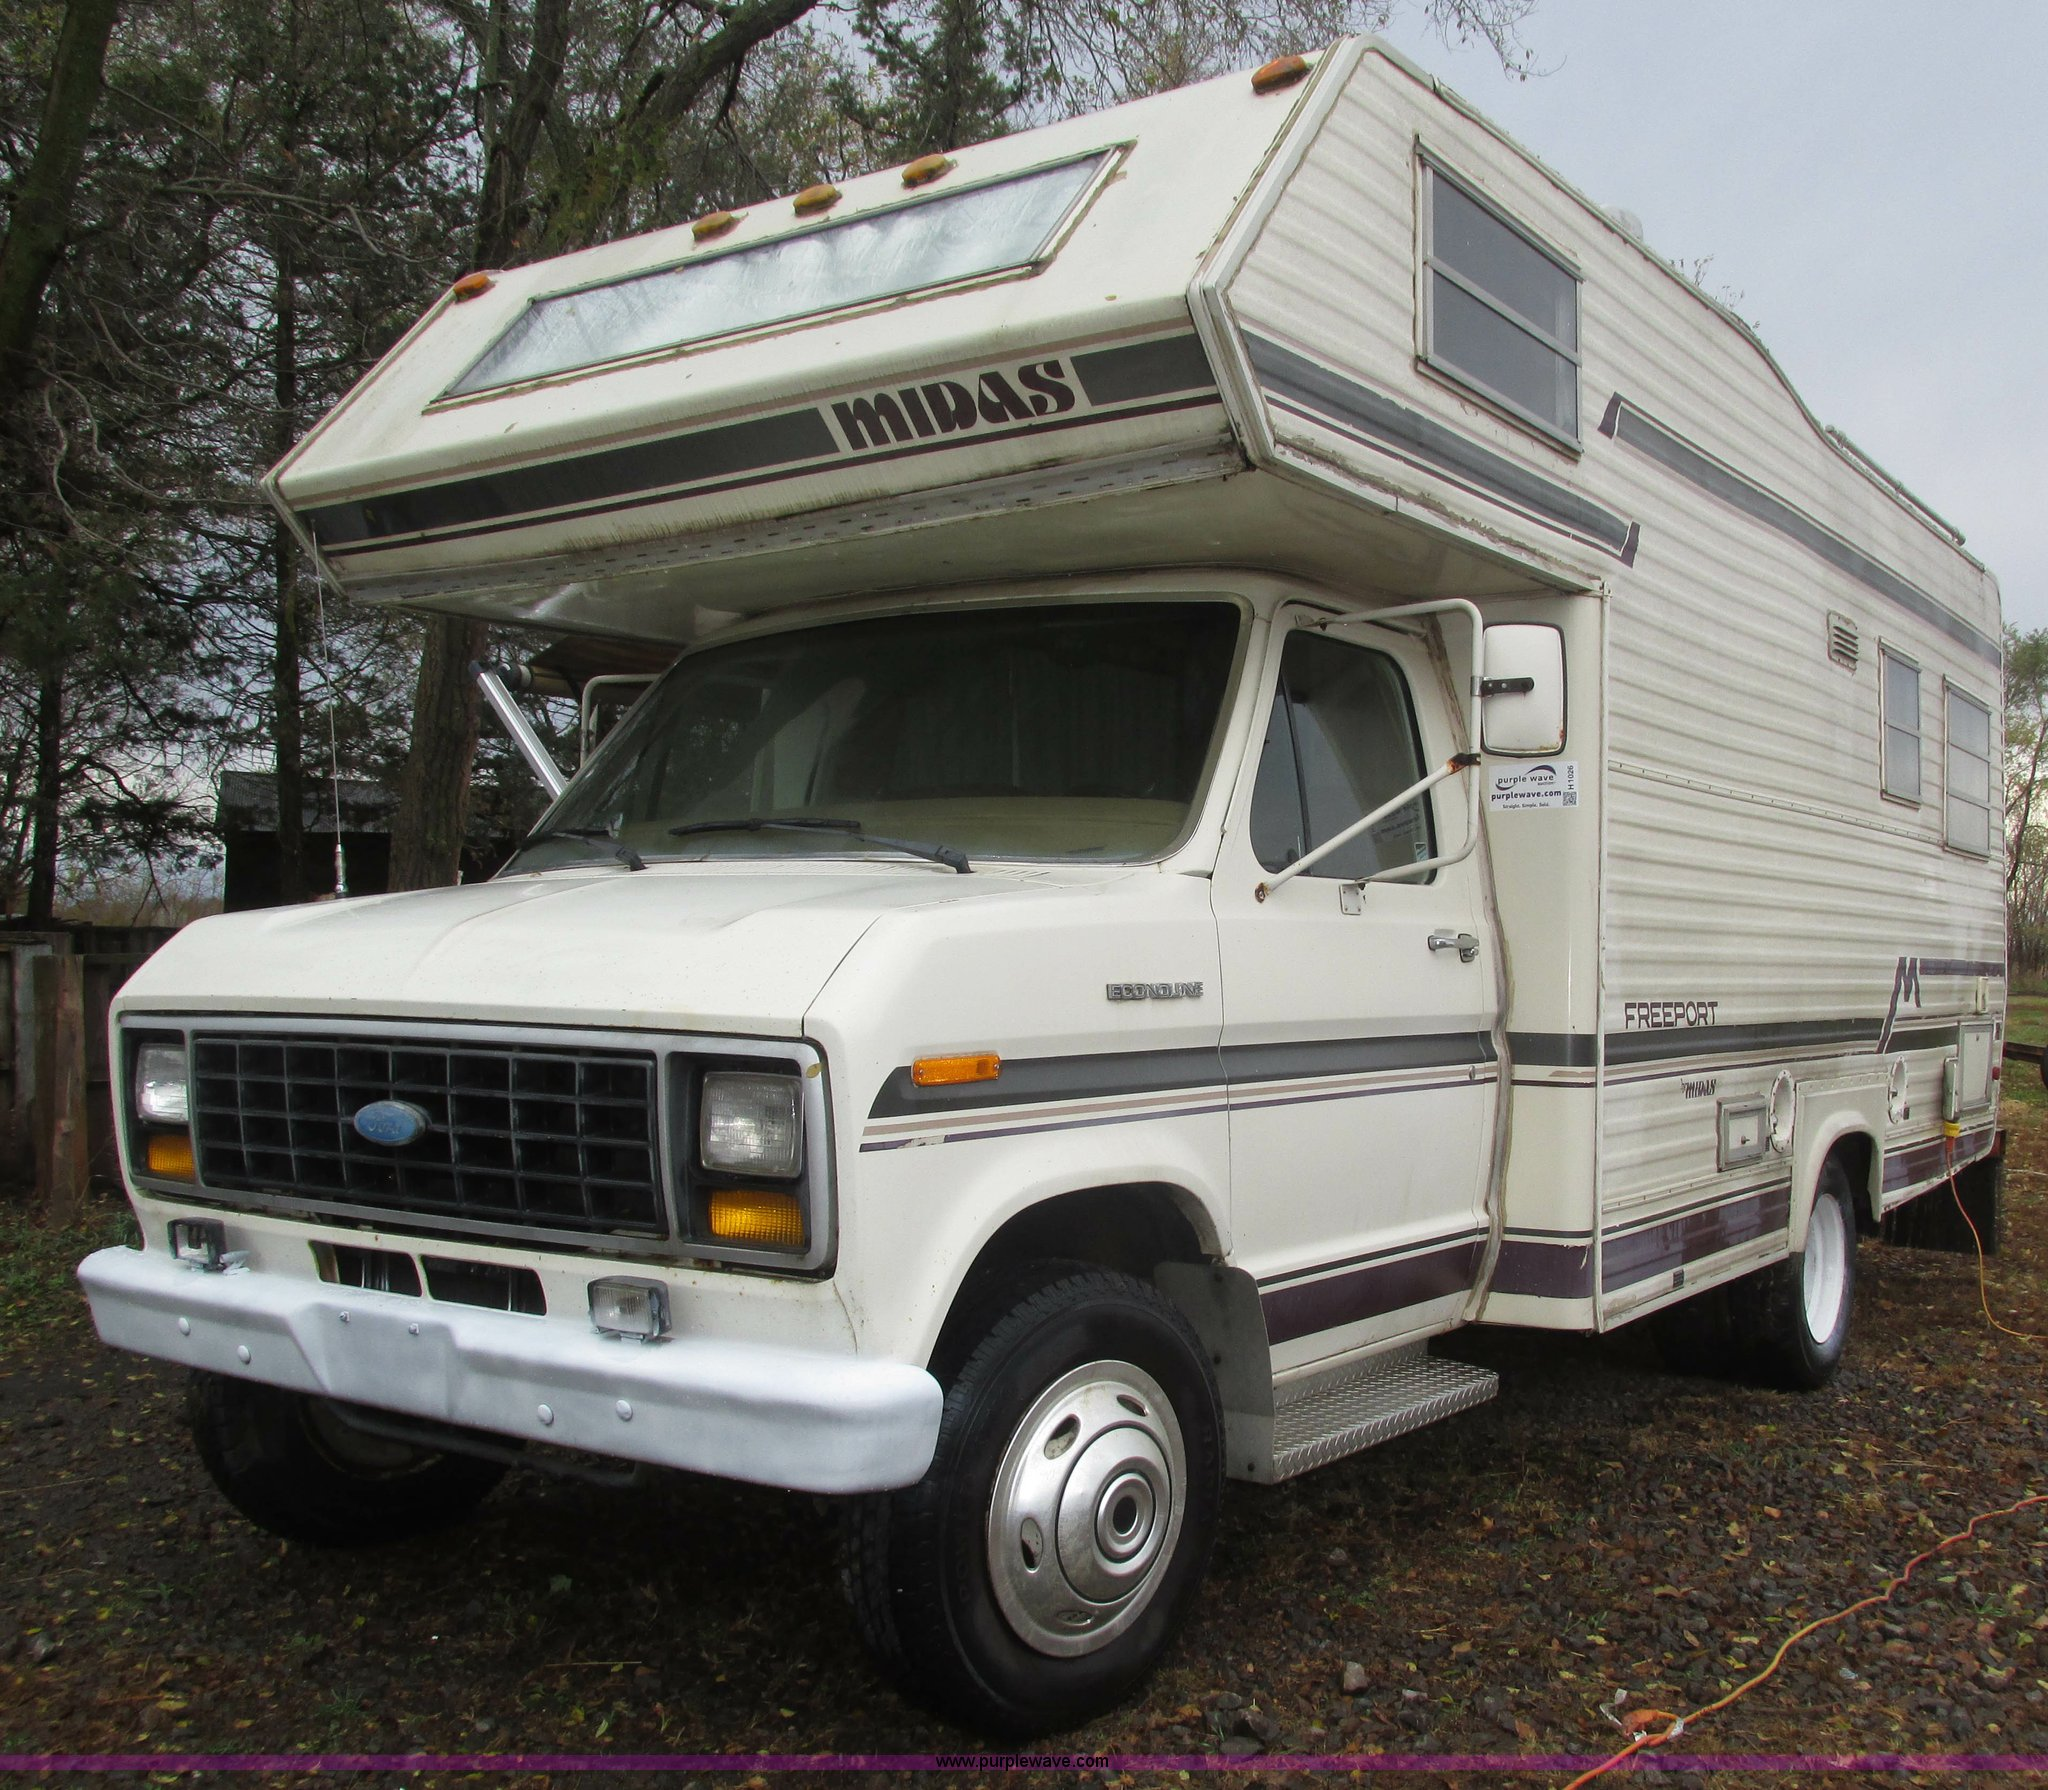 1983 Ford Econoline Coachmen FreePort motorhome | Item H1026